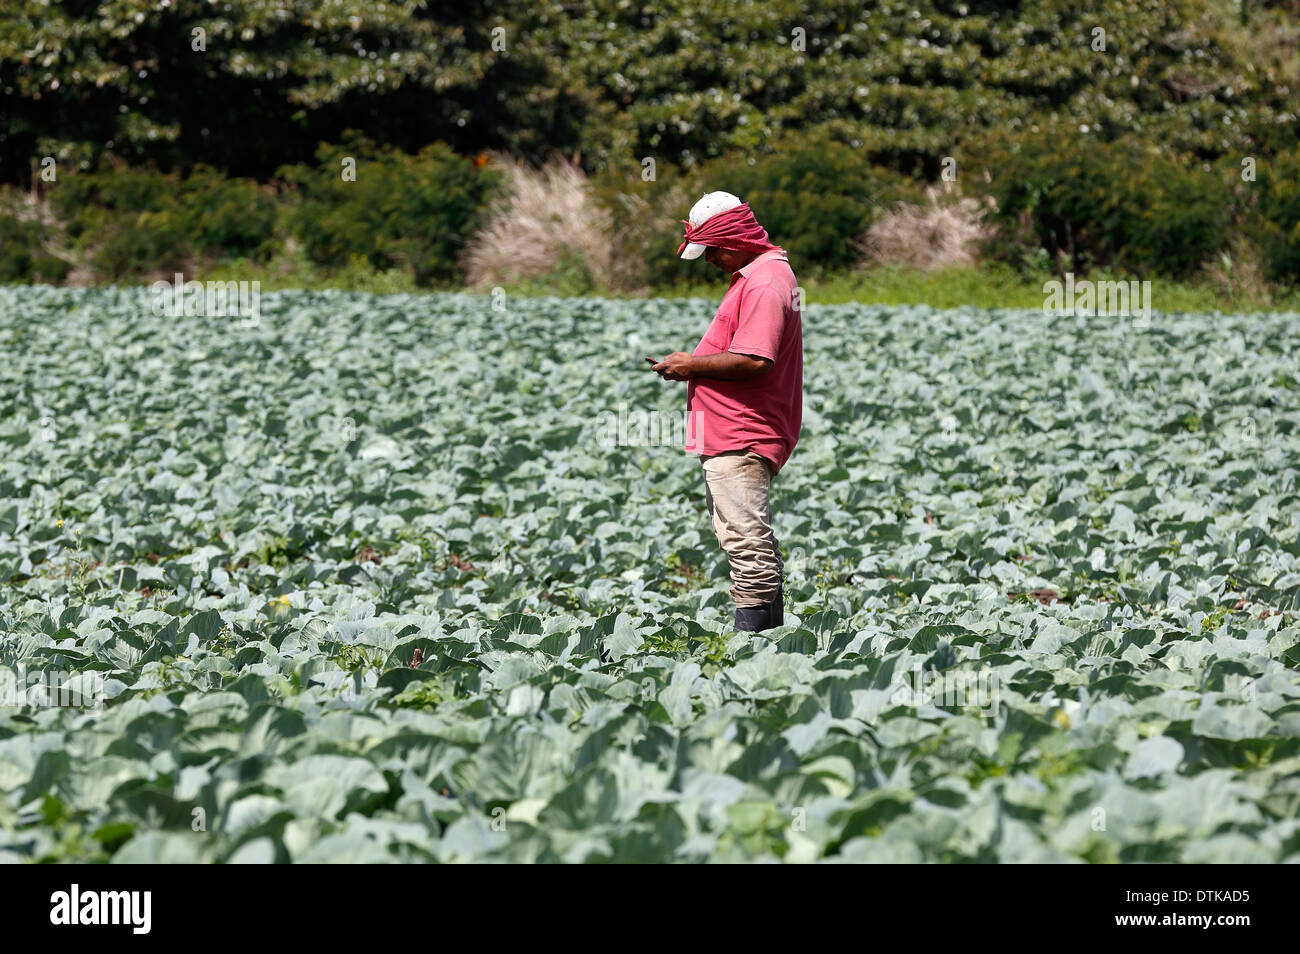 Man reading cell phone in cabbage field, northwest highlands, Nicaragua - Stock Image